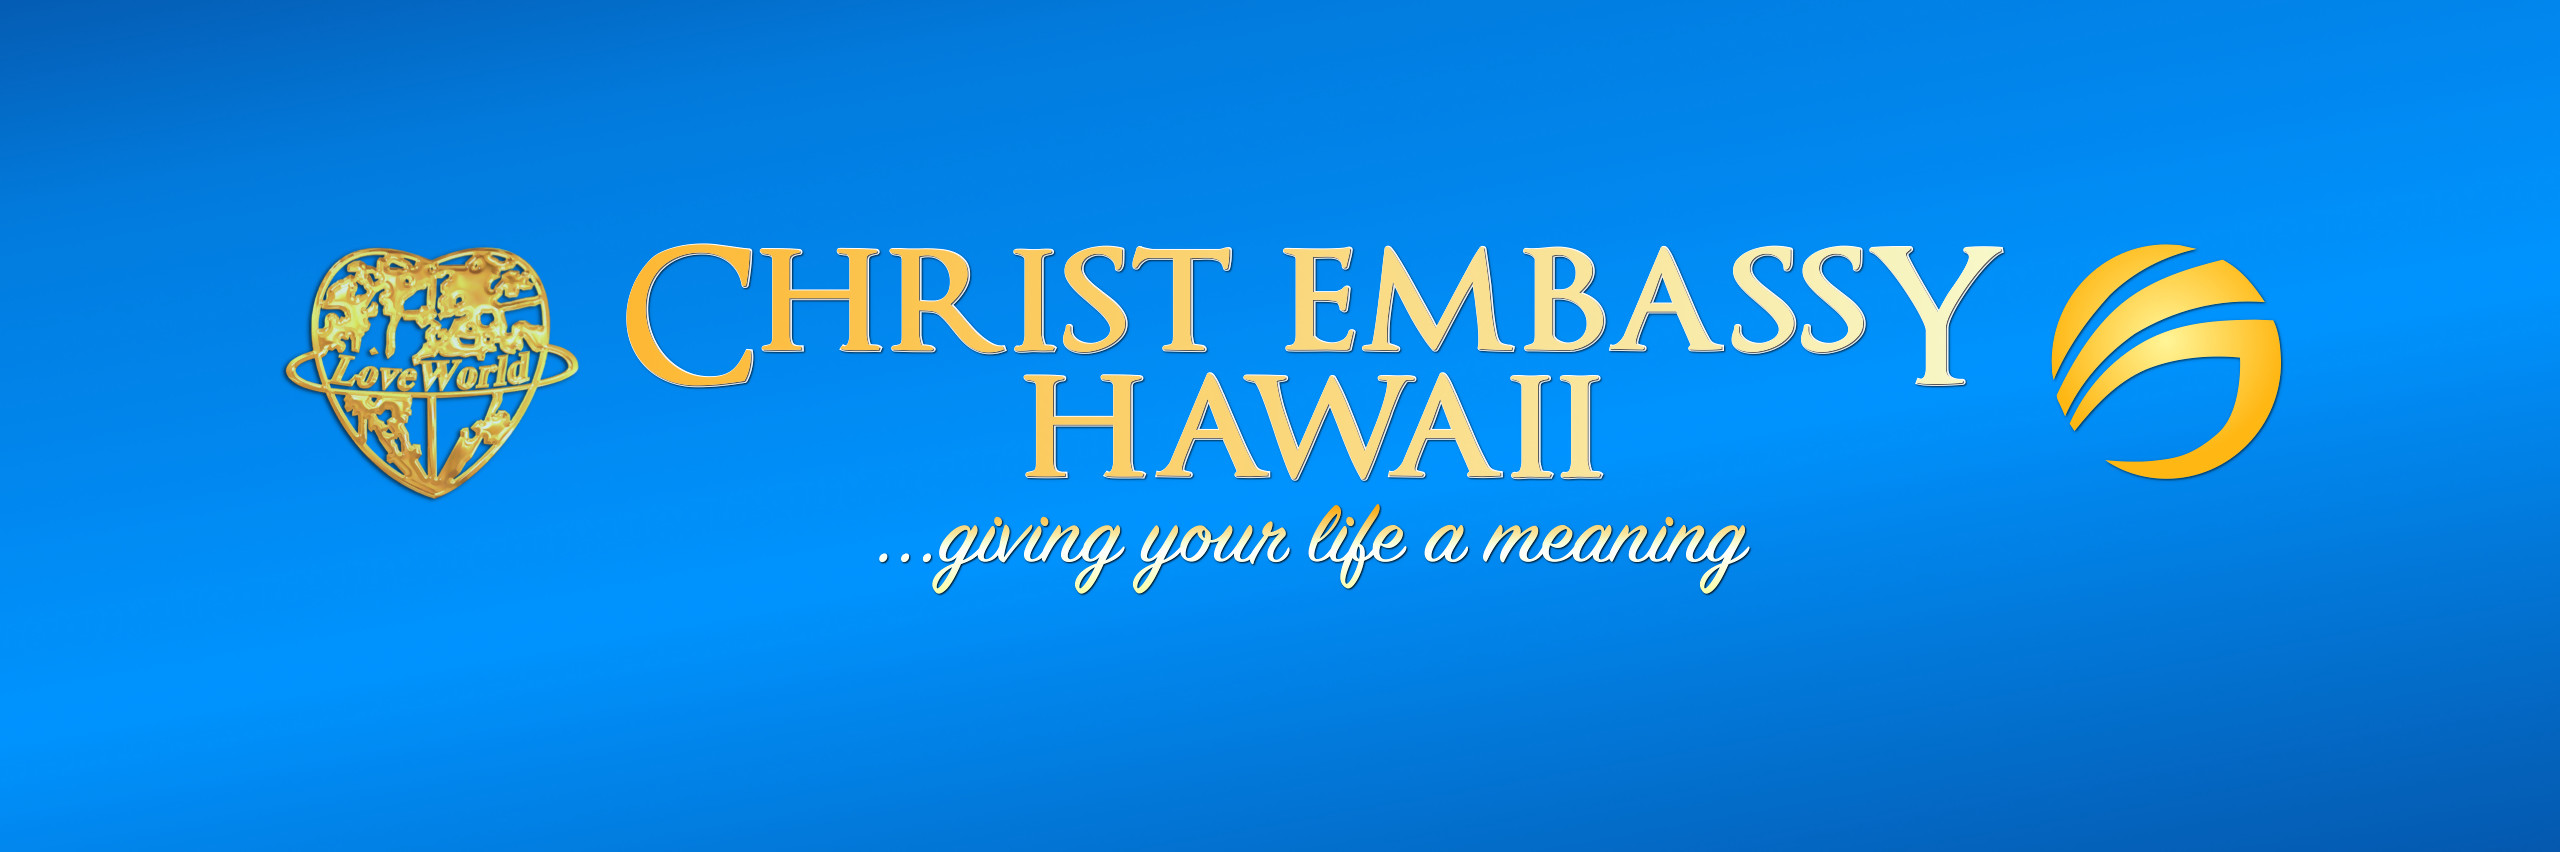 CHRIST EMBASSY HAWAII